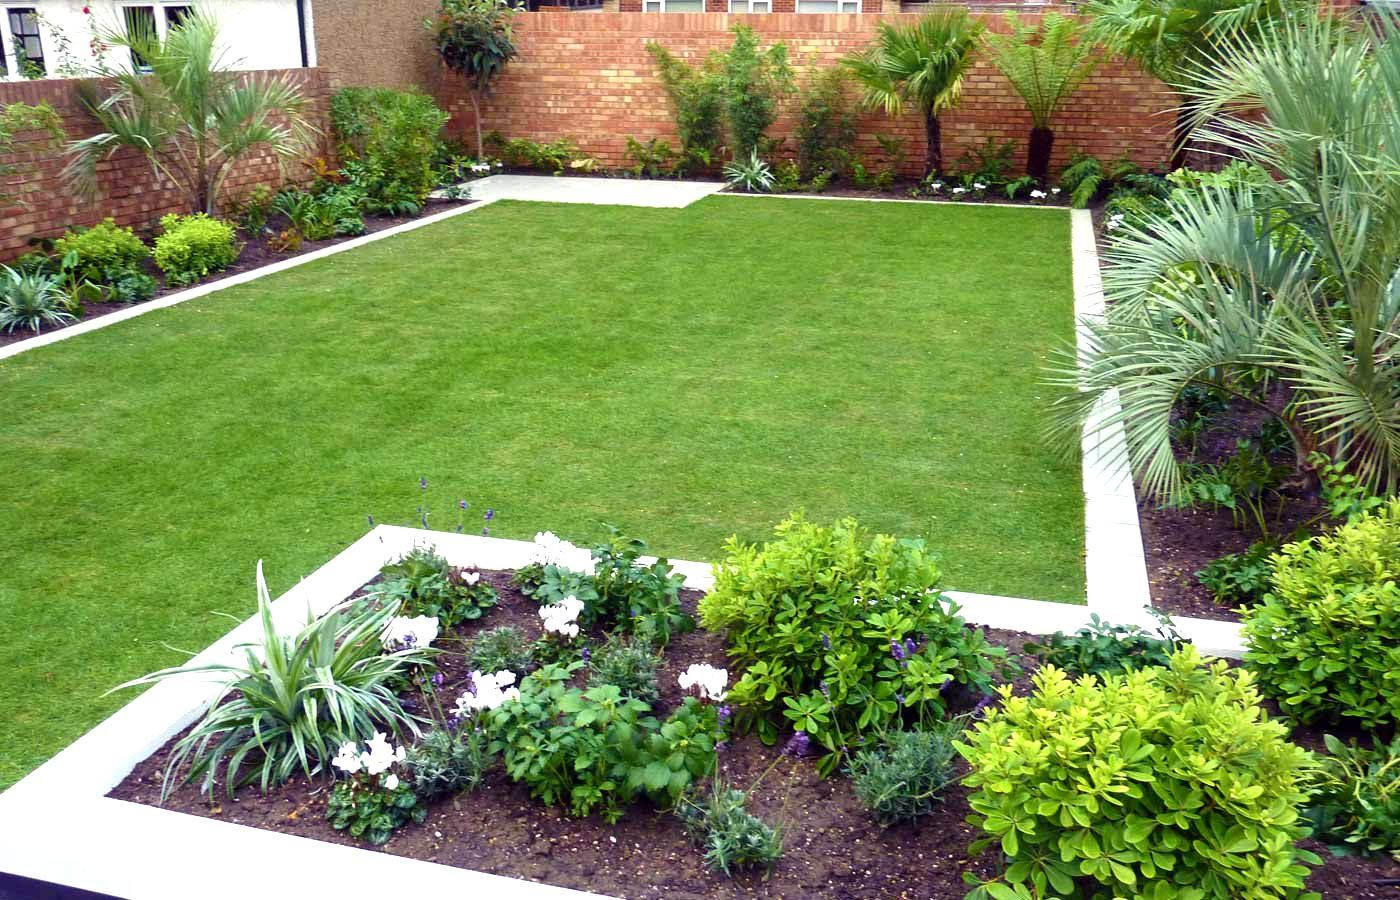 Simple garden designs no fret small garden design for Garden layout ideas